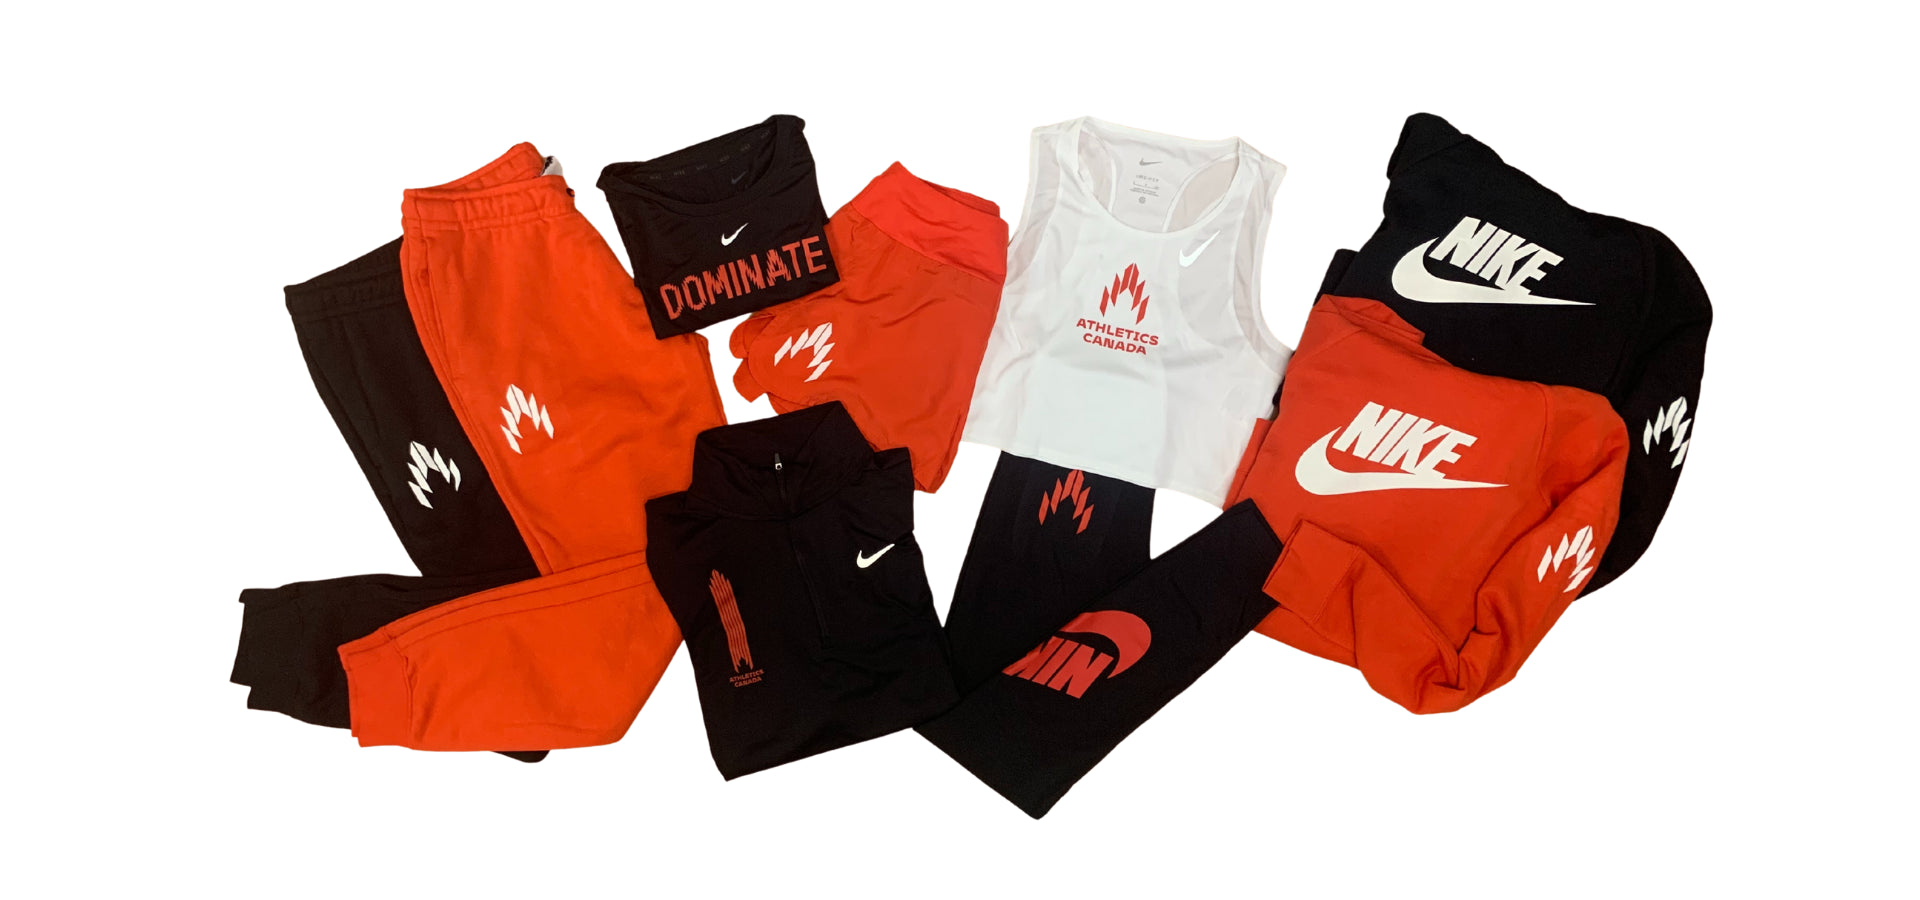 Warm-up for winter with Team Canada gear